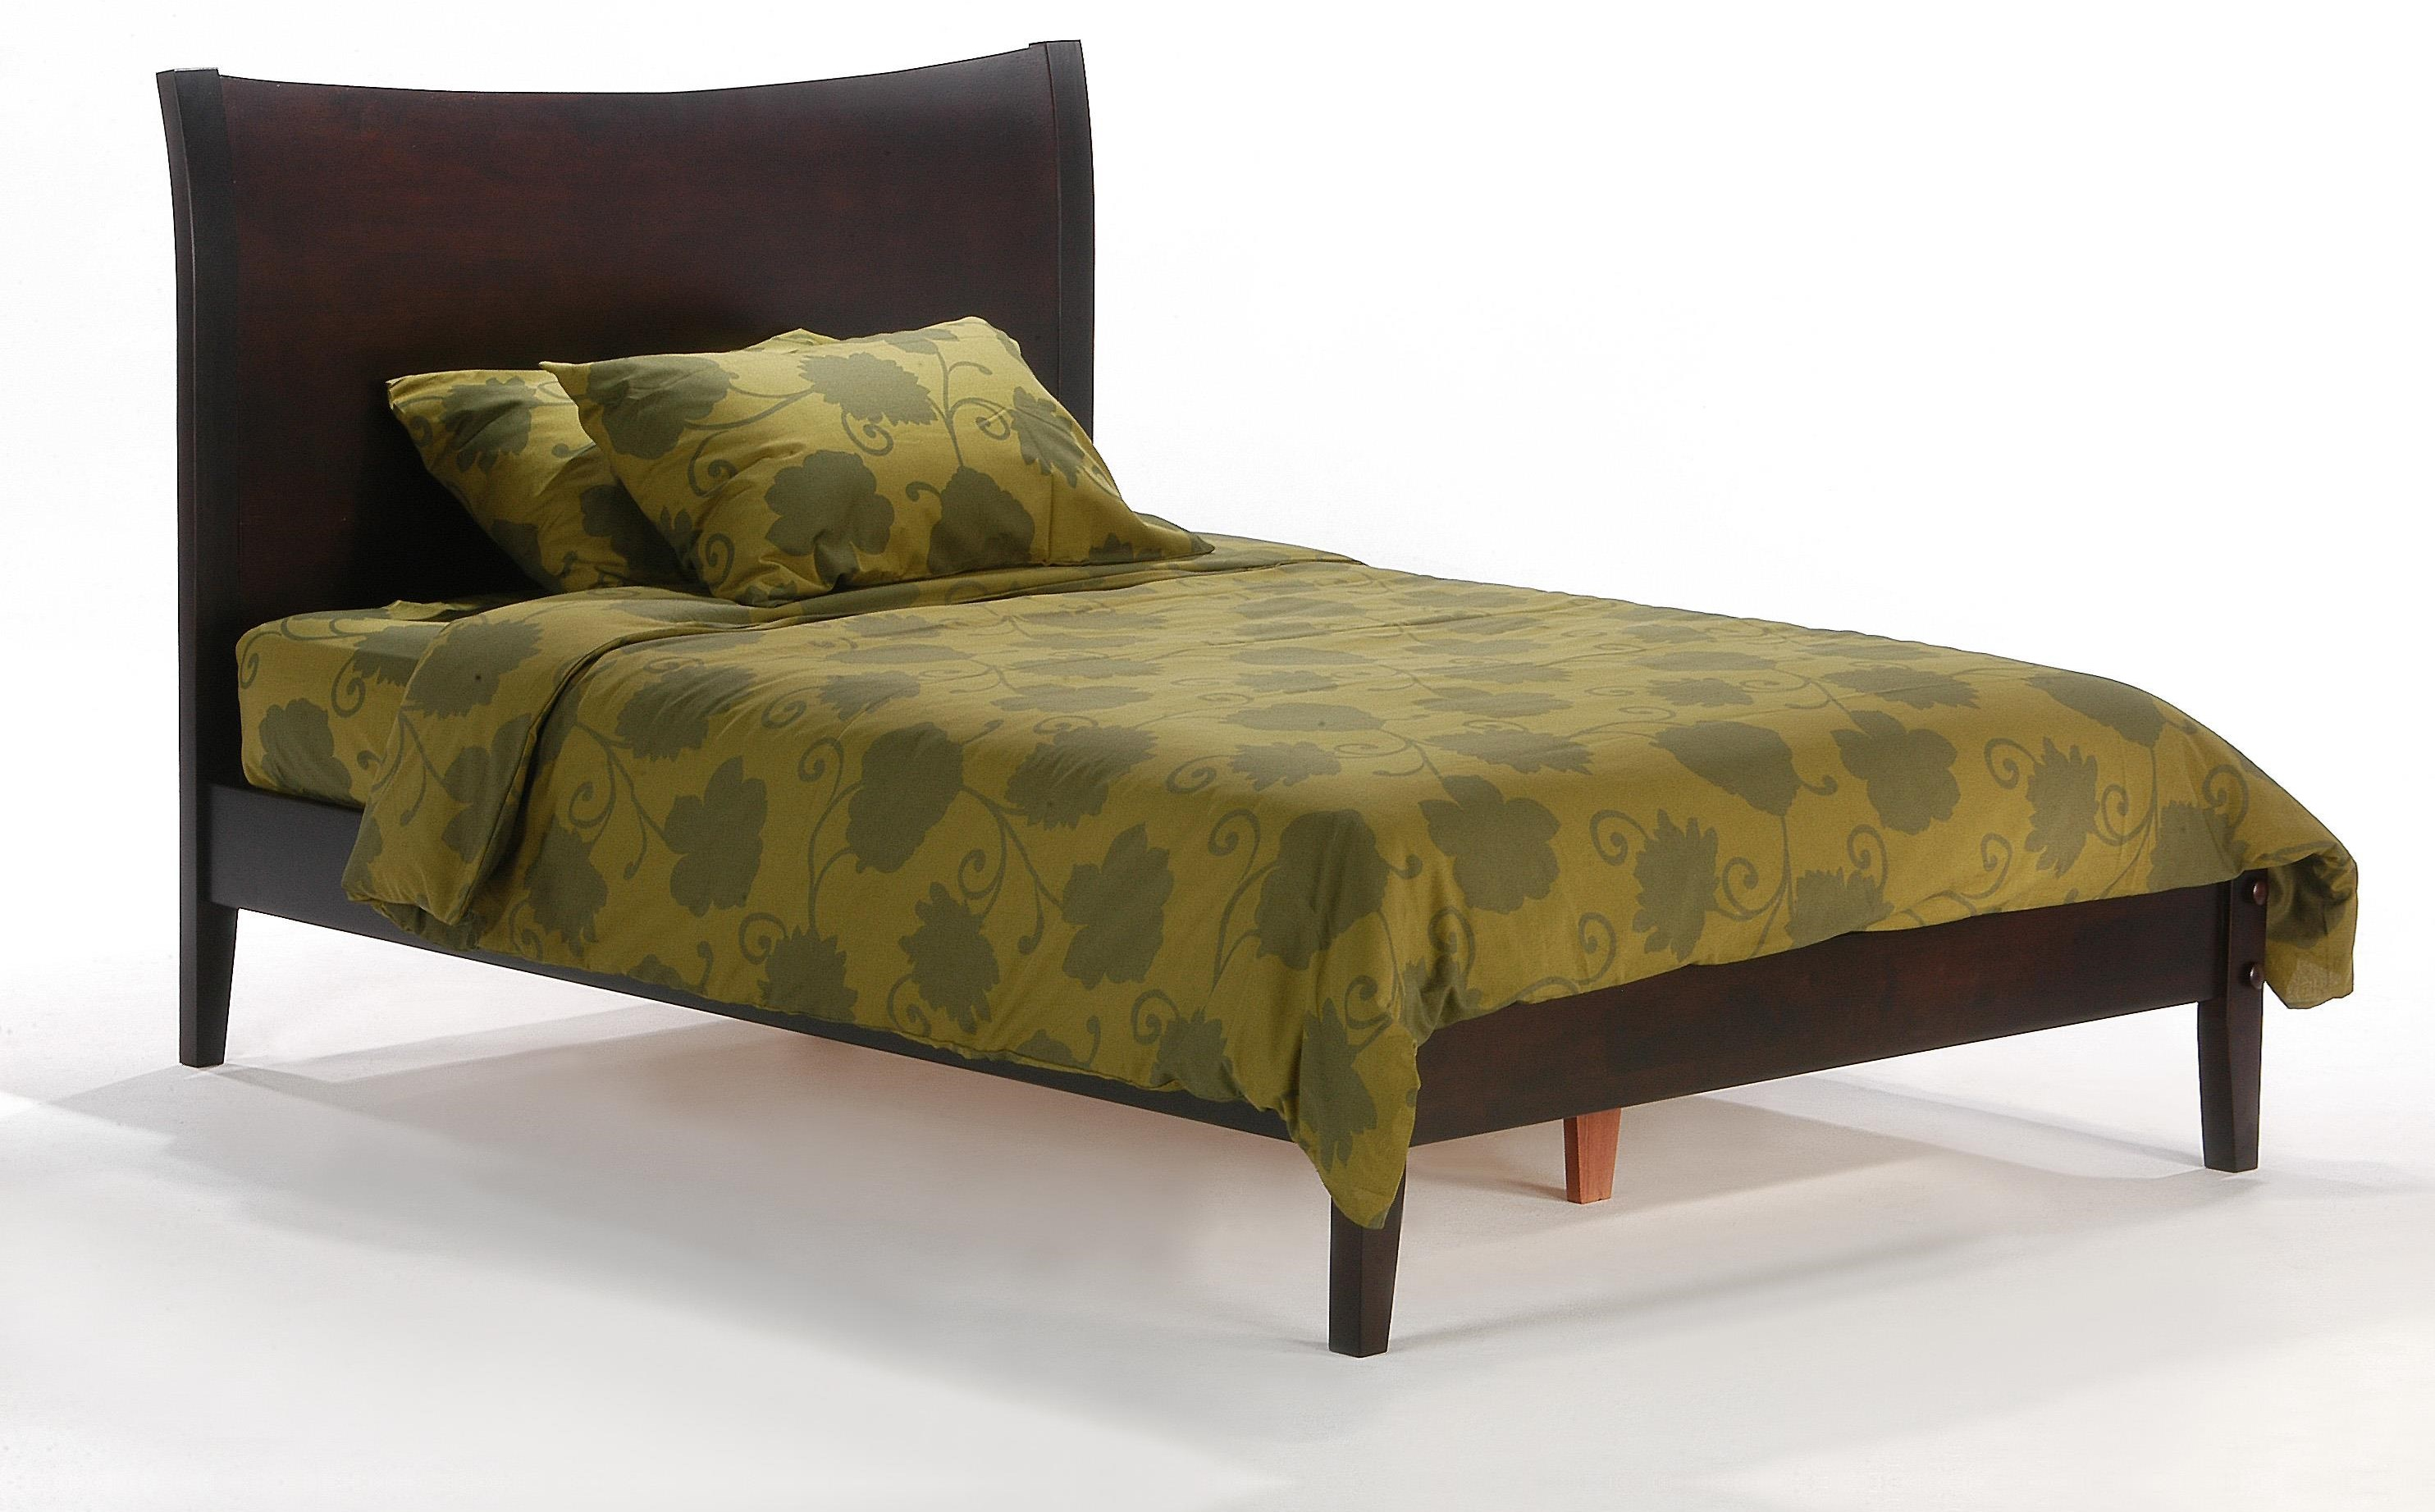 Blackpepper - Chocolate King Bed by Pacific Manufacturing at SlumberWorld